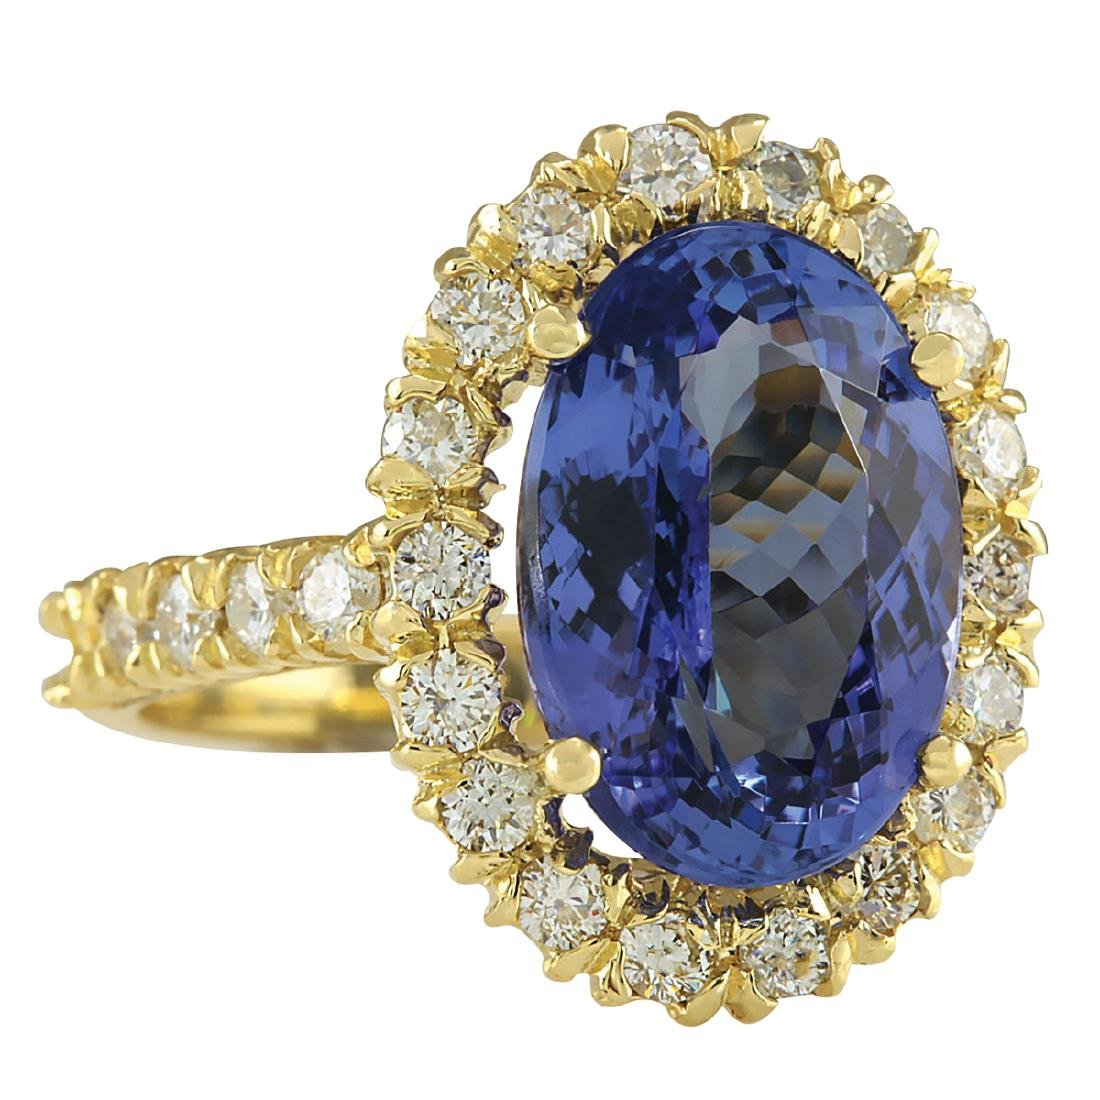 7.92CTW Natural Blue Tanzanite And Diamond Ring In 18K - 2